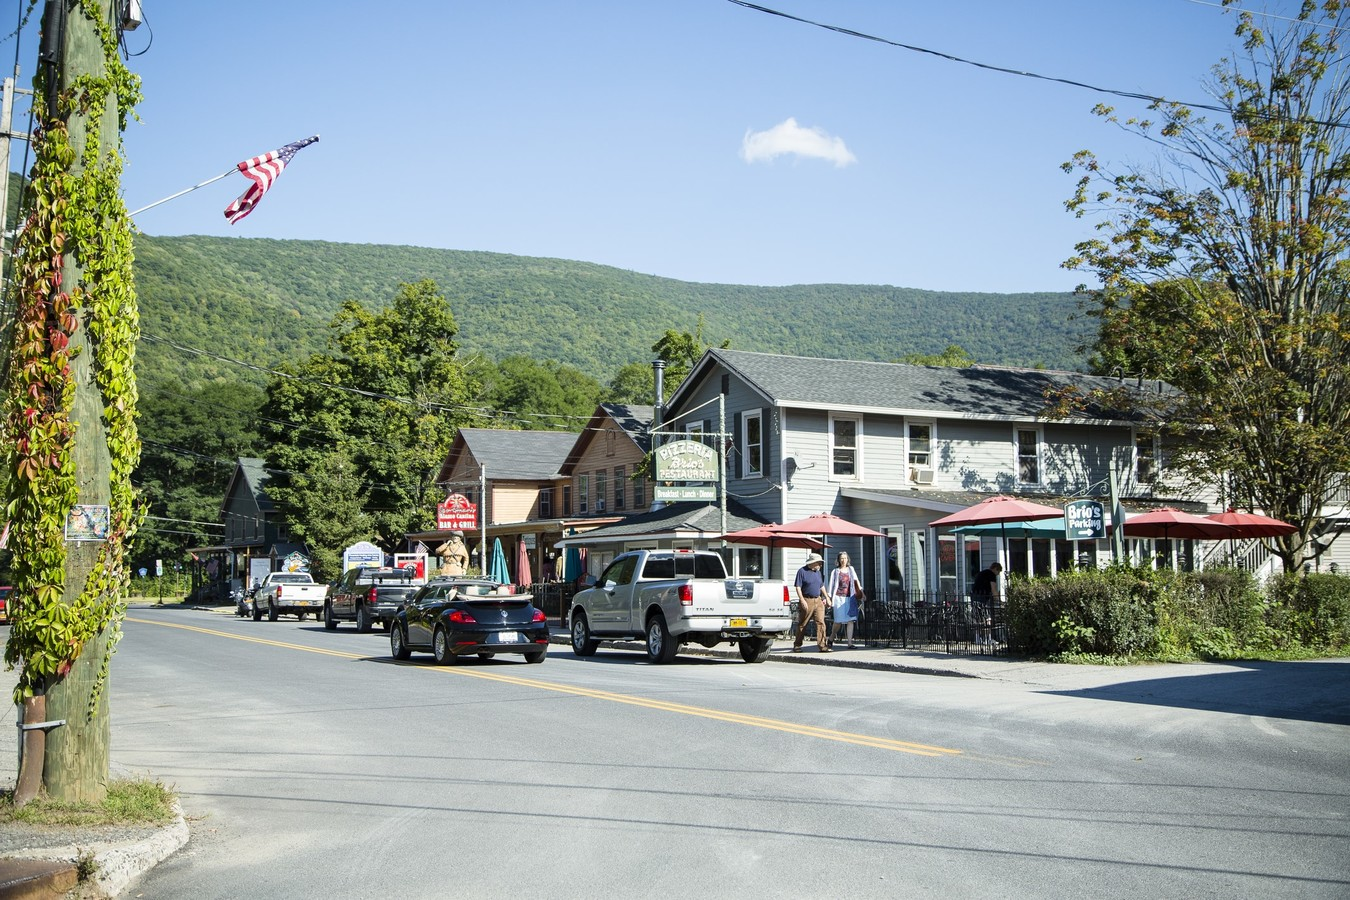 small town with Catskill Mountains in background